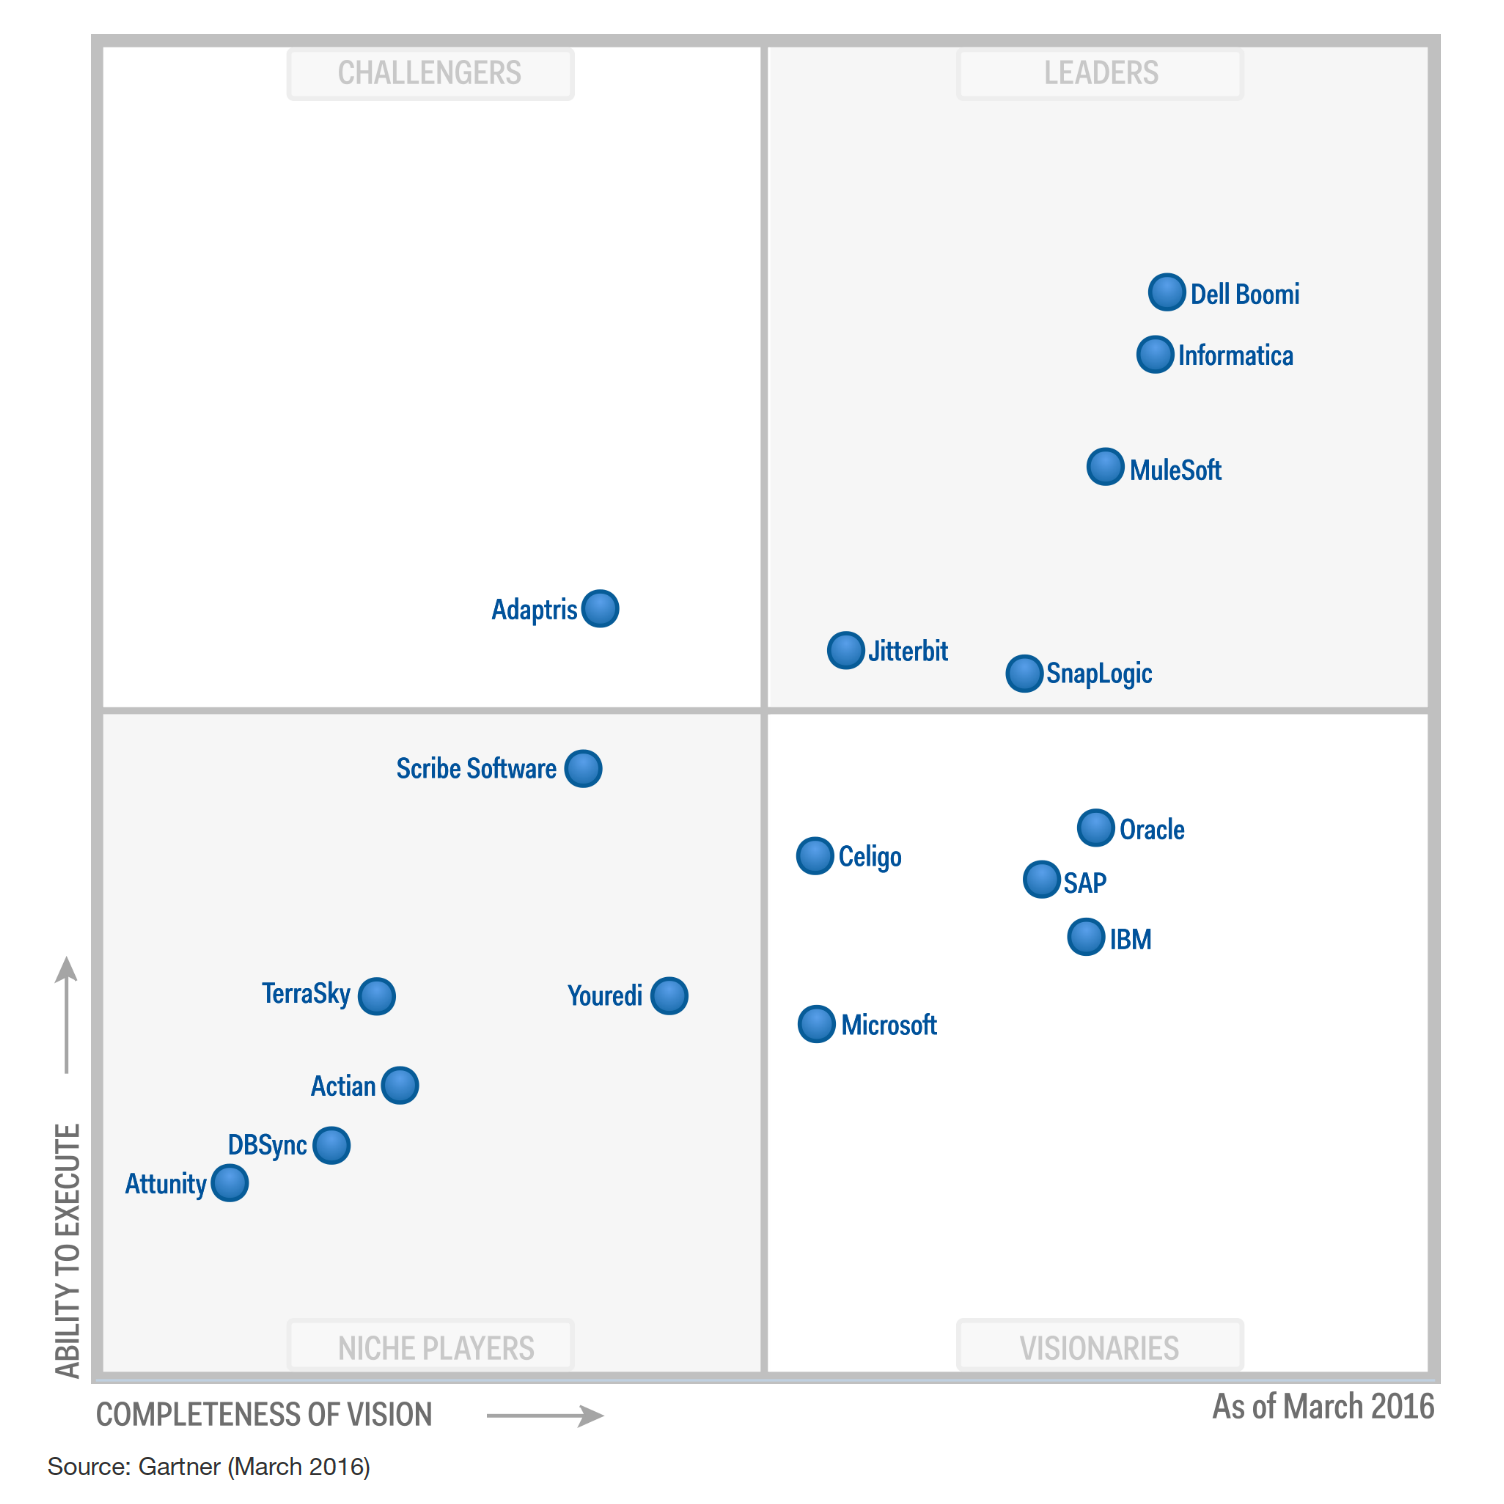 jitterbit named a leader in gartner magic quadrant for enterprise